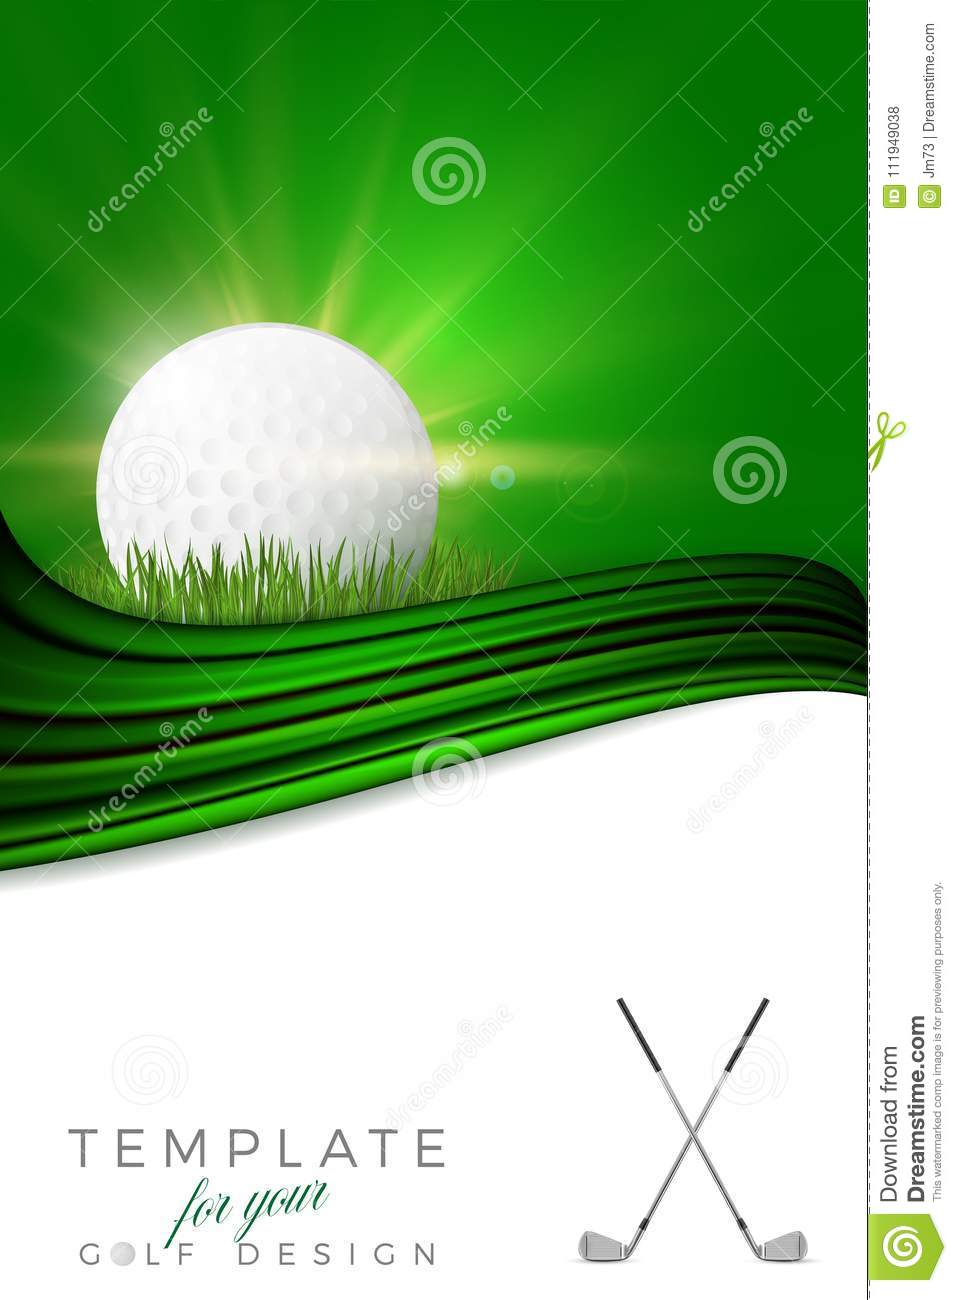 Background for your golf design with golf ball